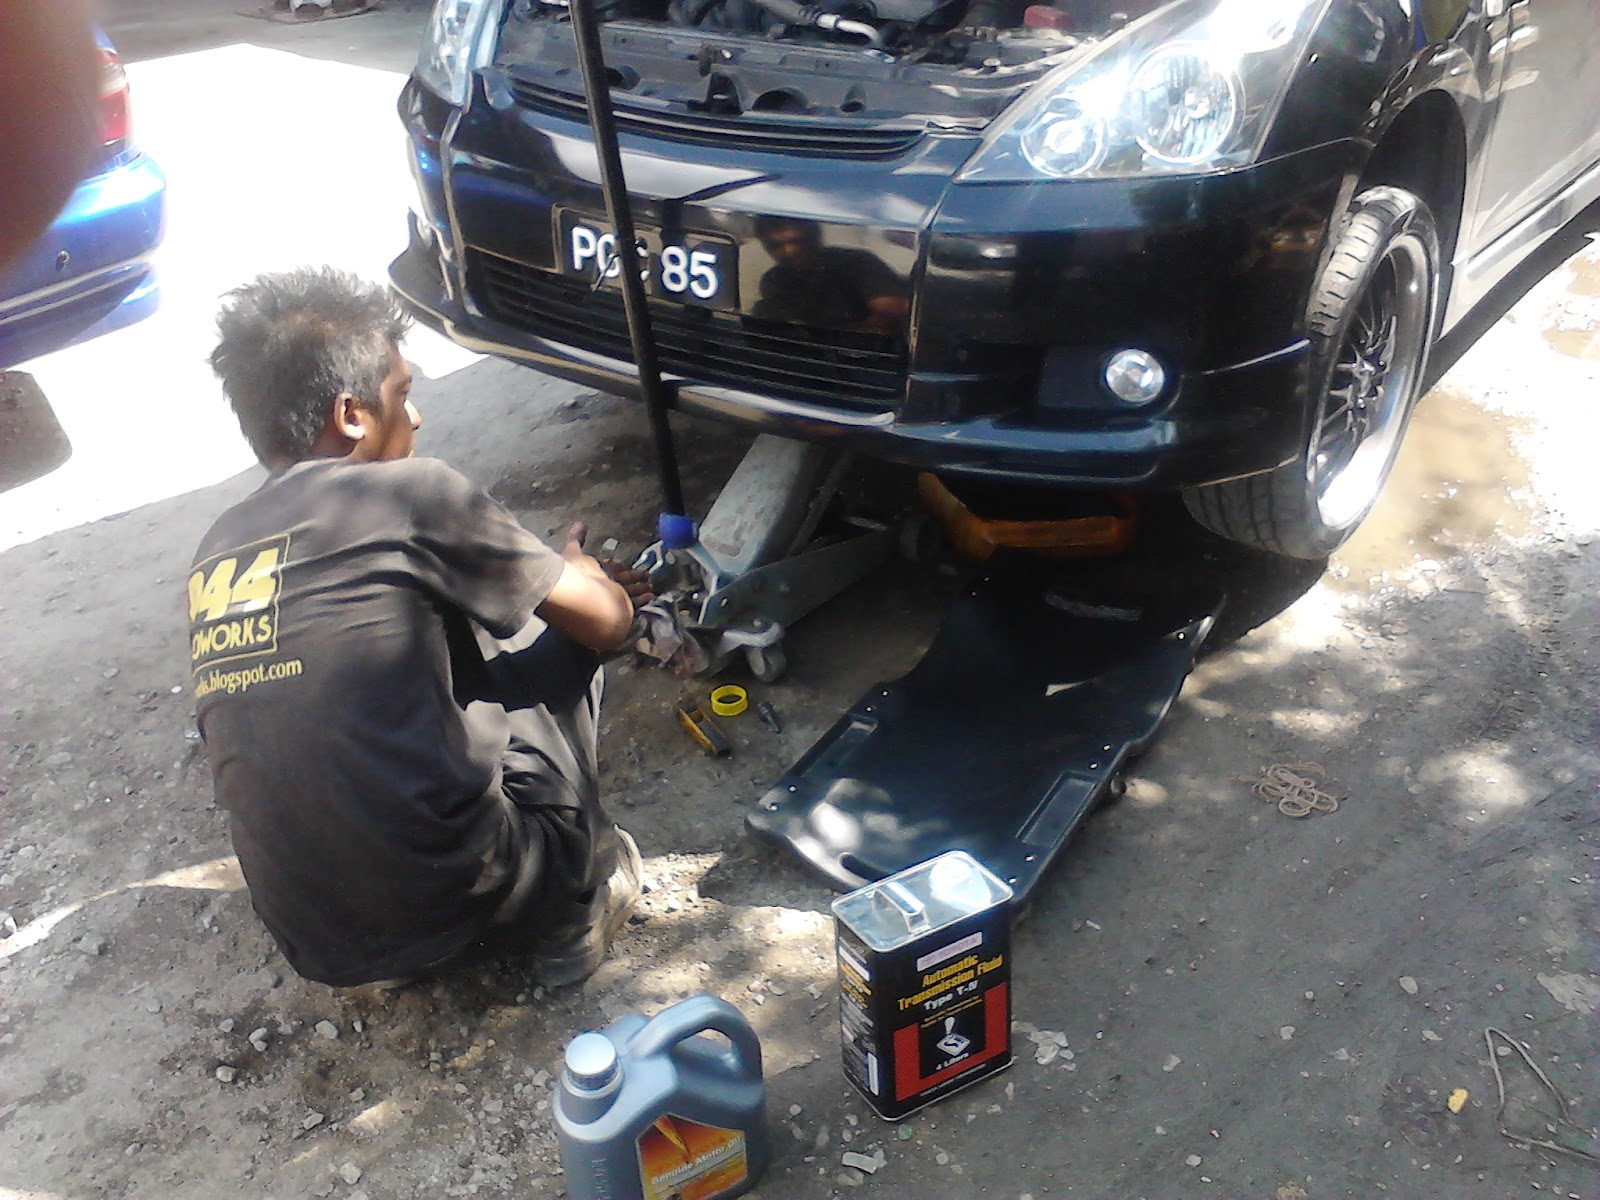 Toyota Wish Owner Manual Fuse Box Location Driving Original Lubricants